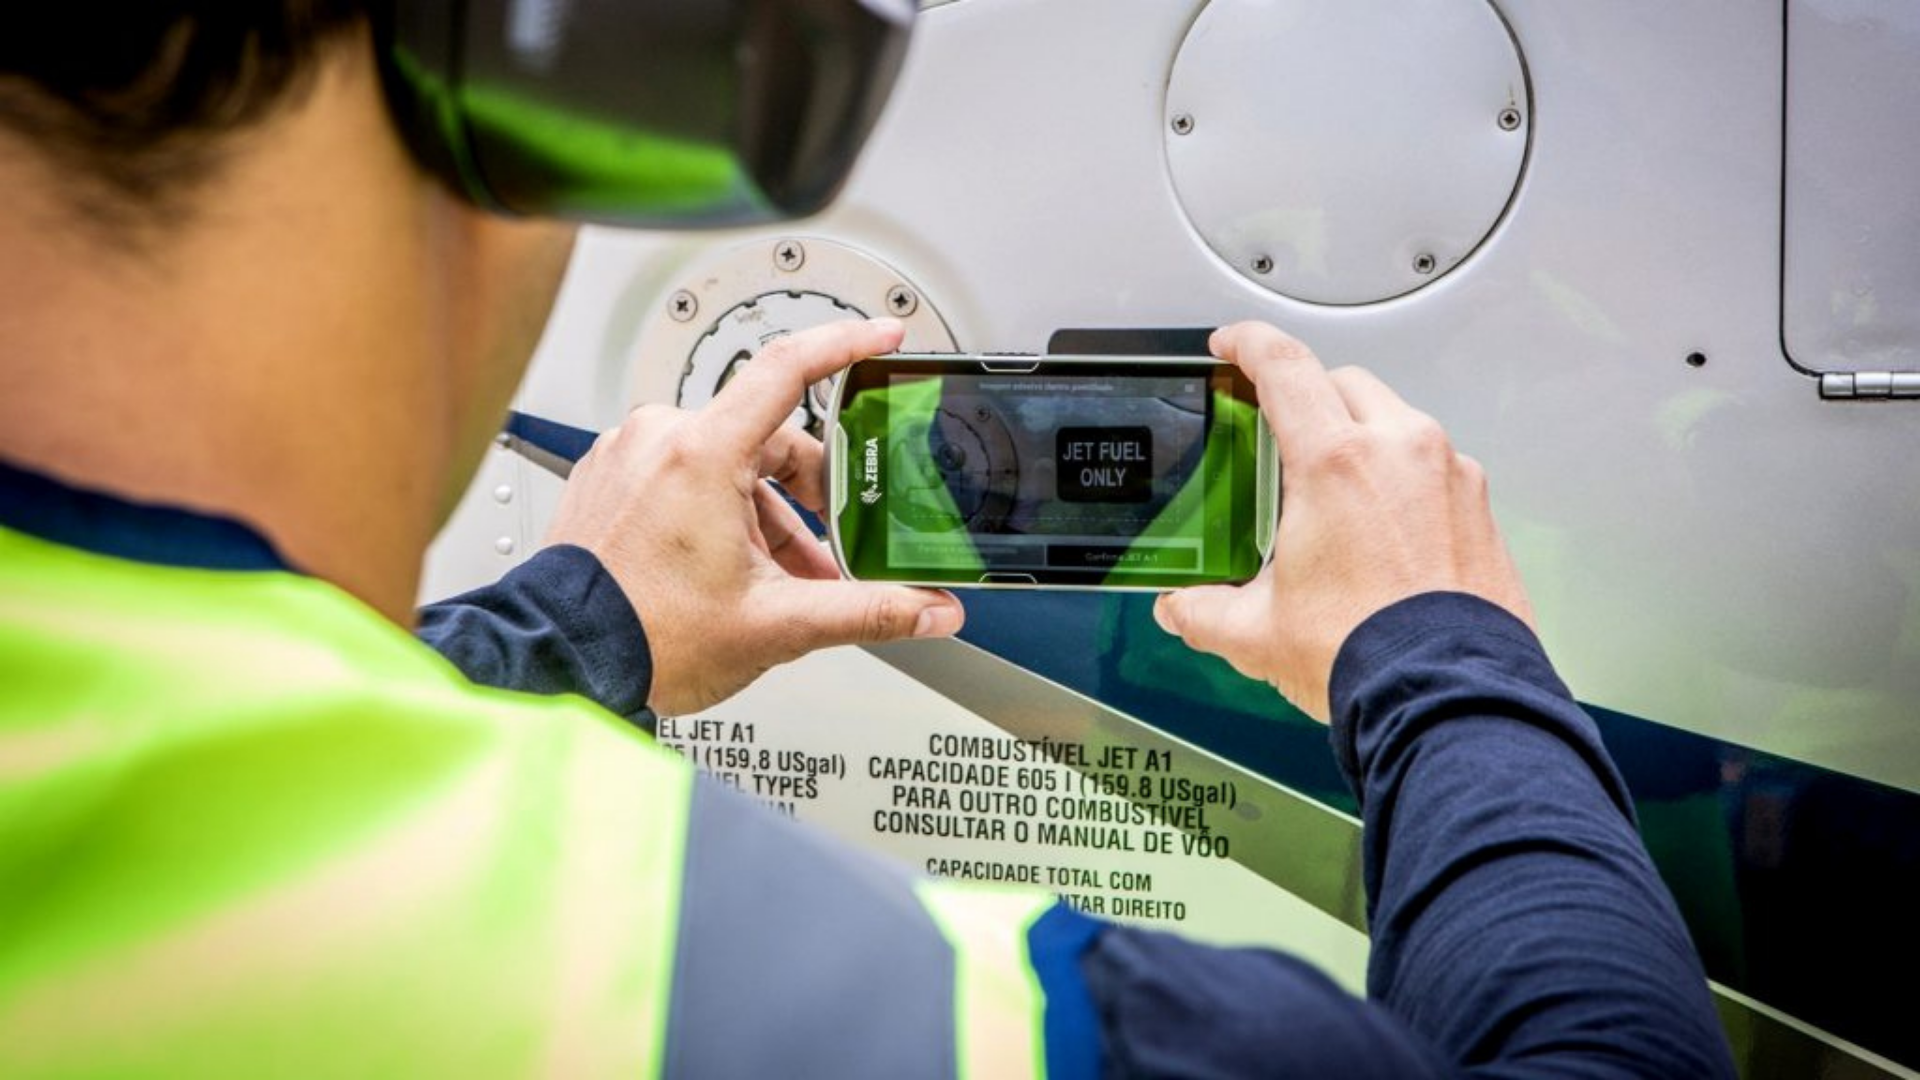 AR-enabled solution for aircraft safe refuelling